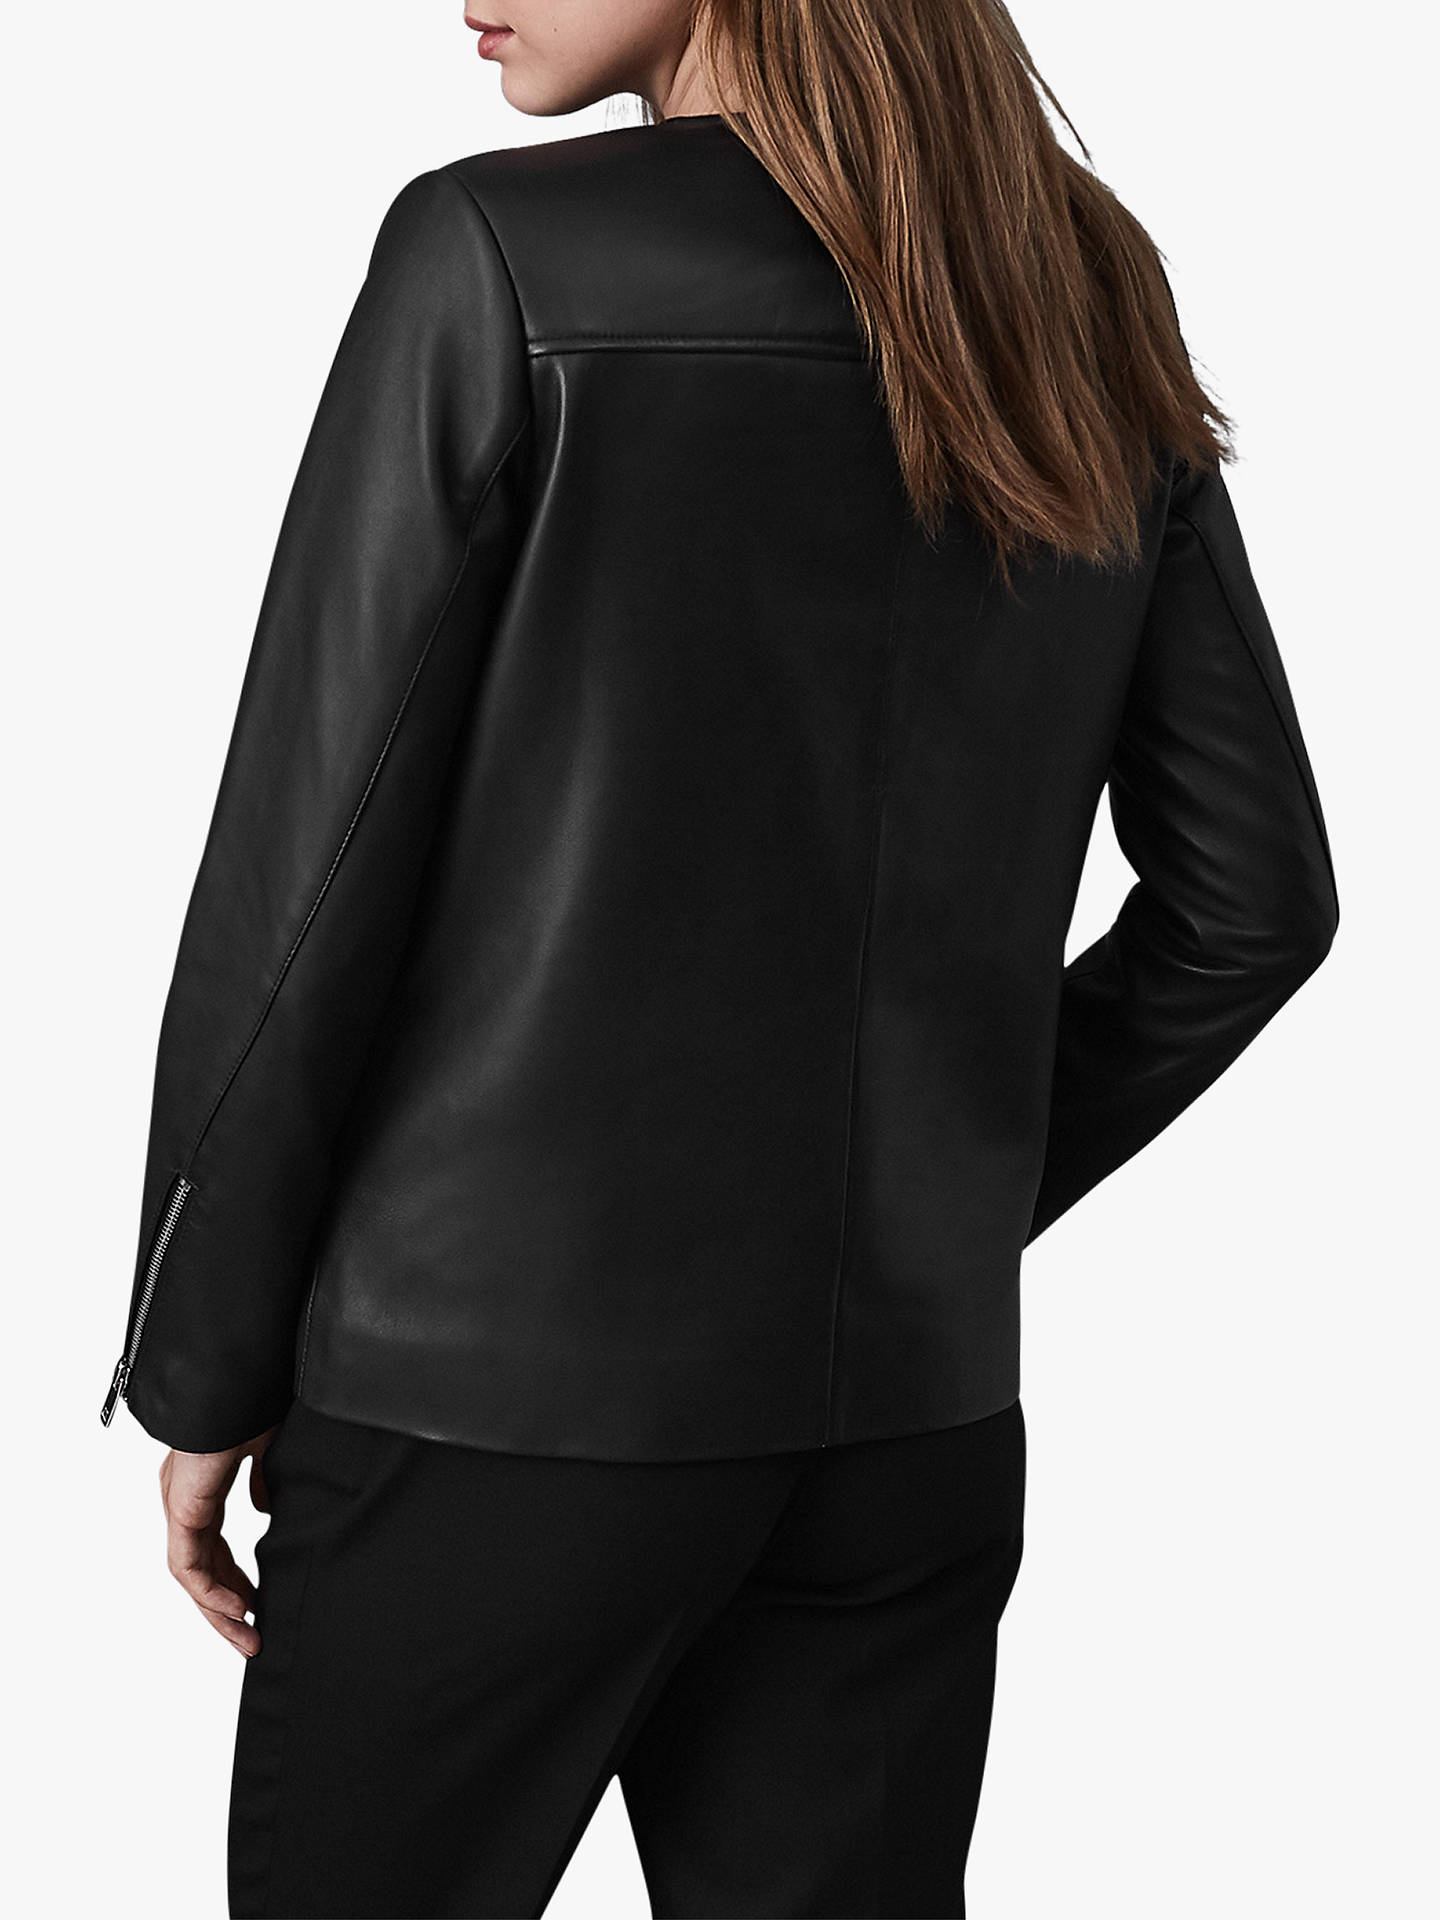 Buy Reiss Marissa Long Leather Jacket, Black, 8 Online at johnlewis.com